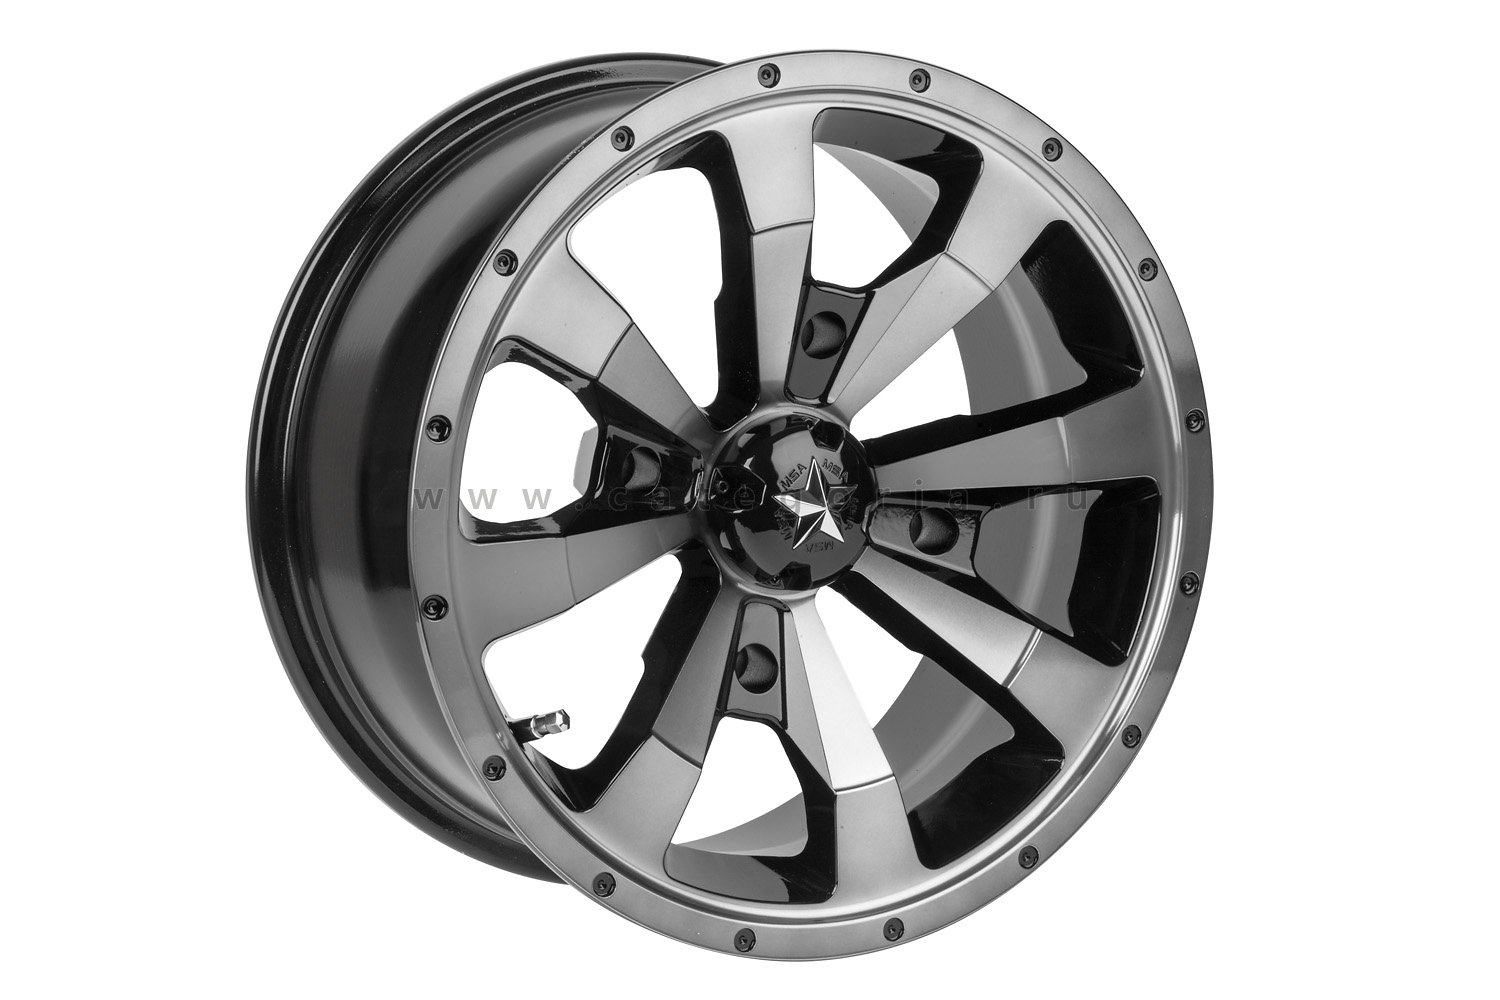 MSA M22 R16x7, 4x137, +15 mm, Enduro Dark-Tint - диск колесный